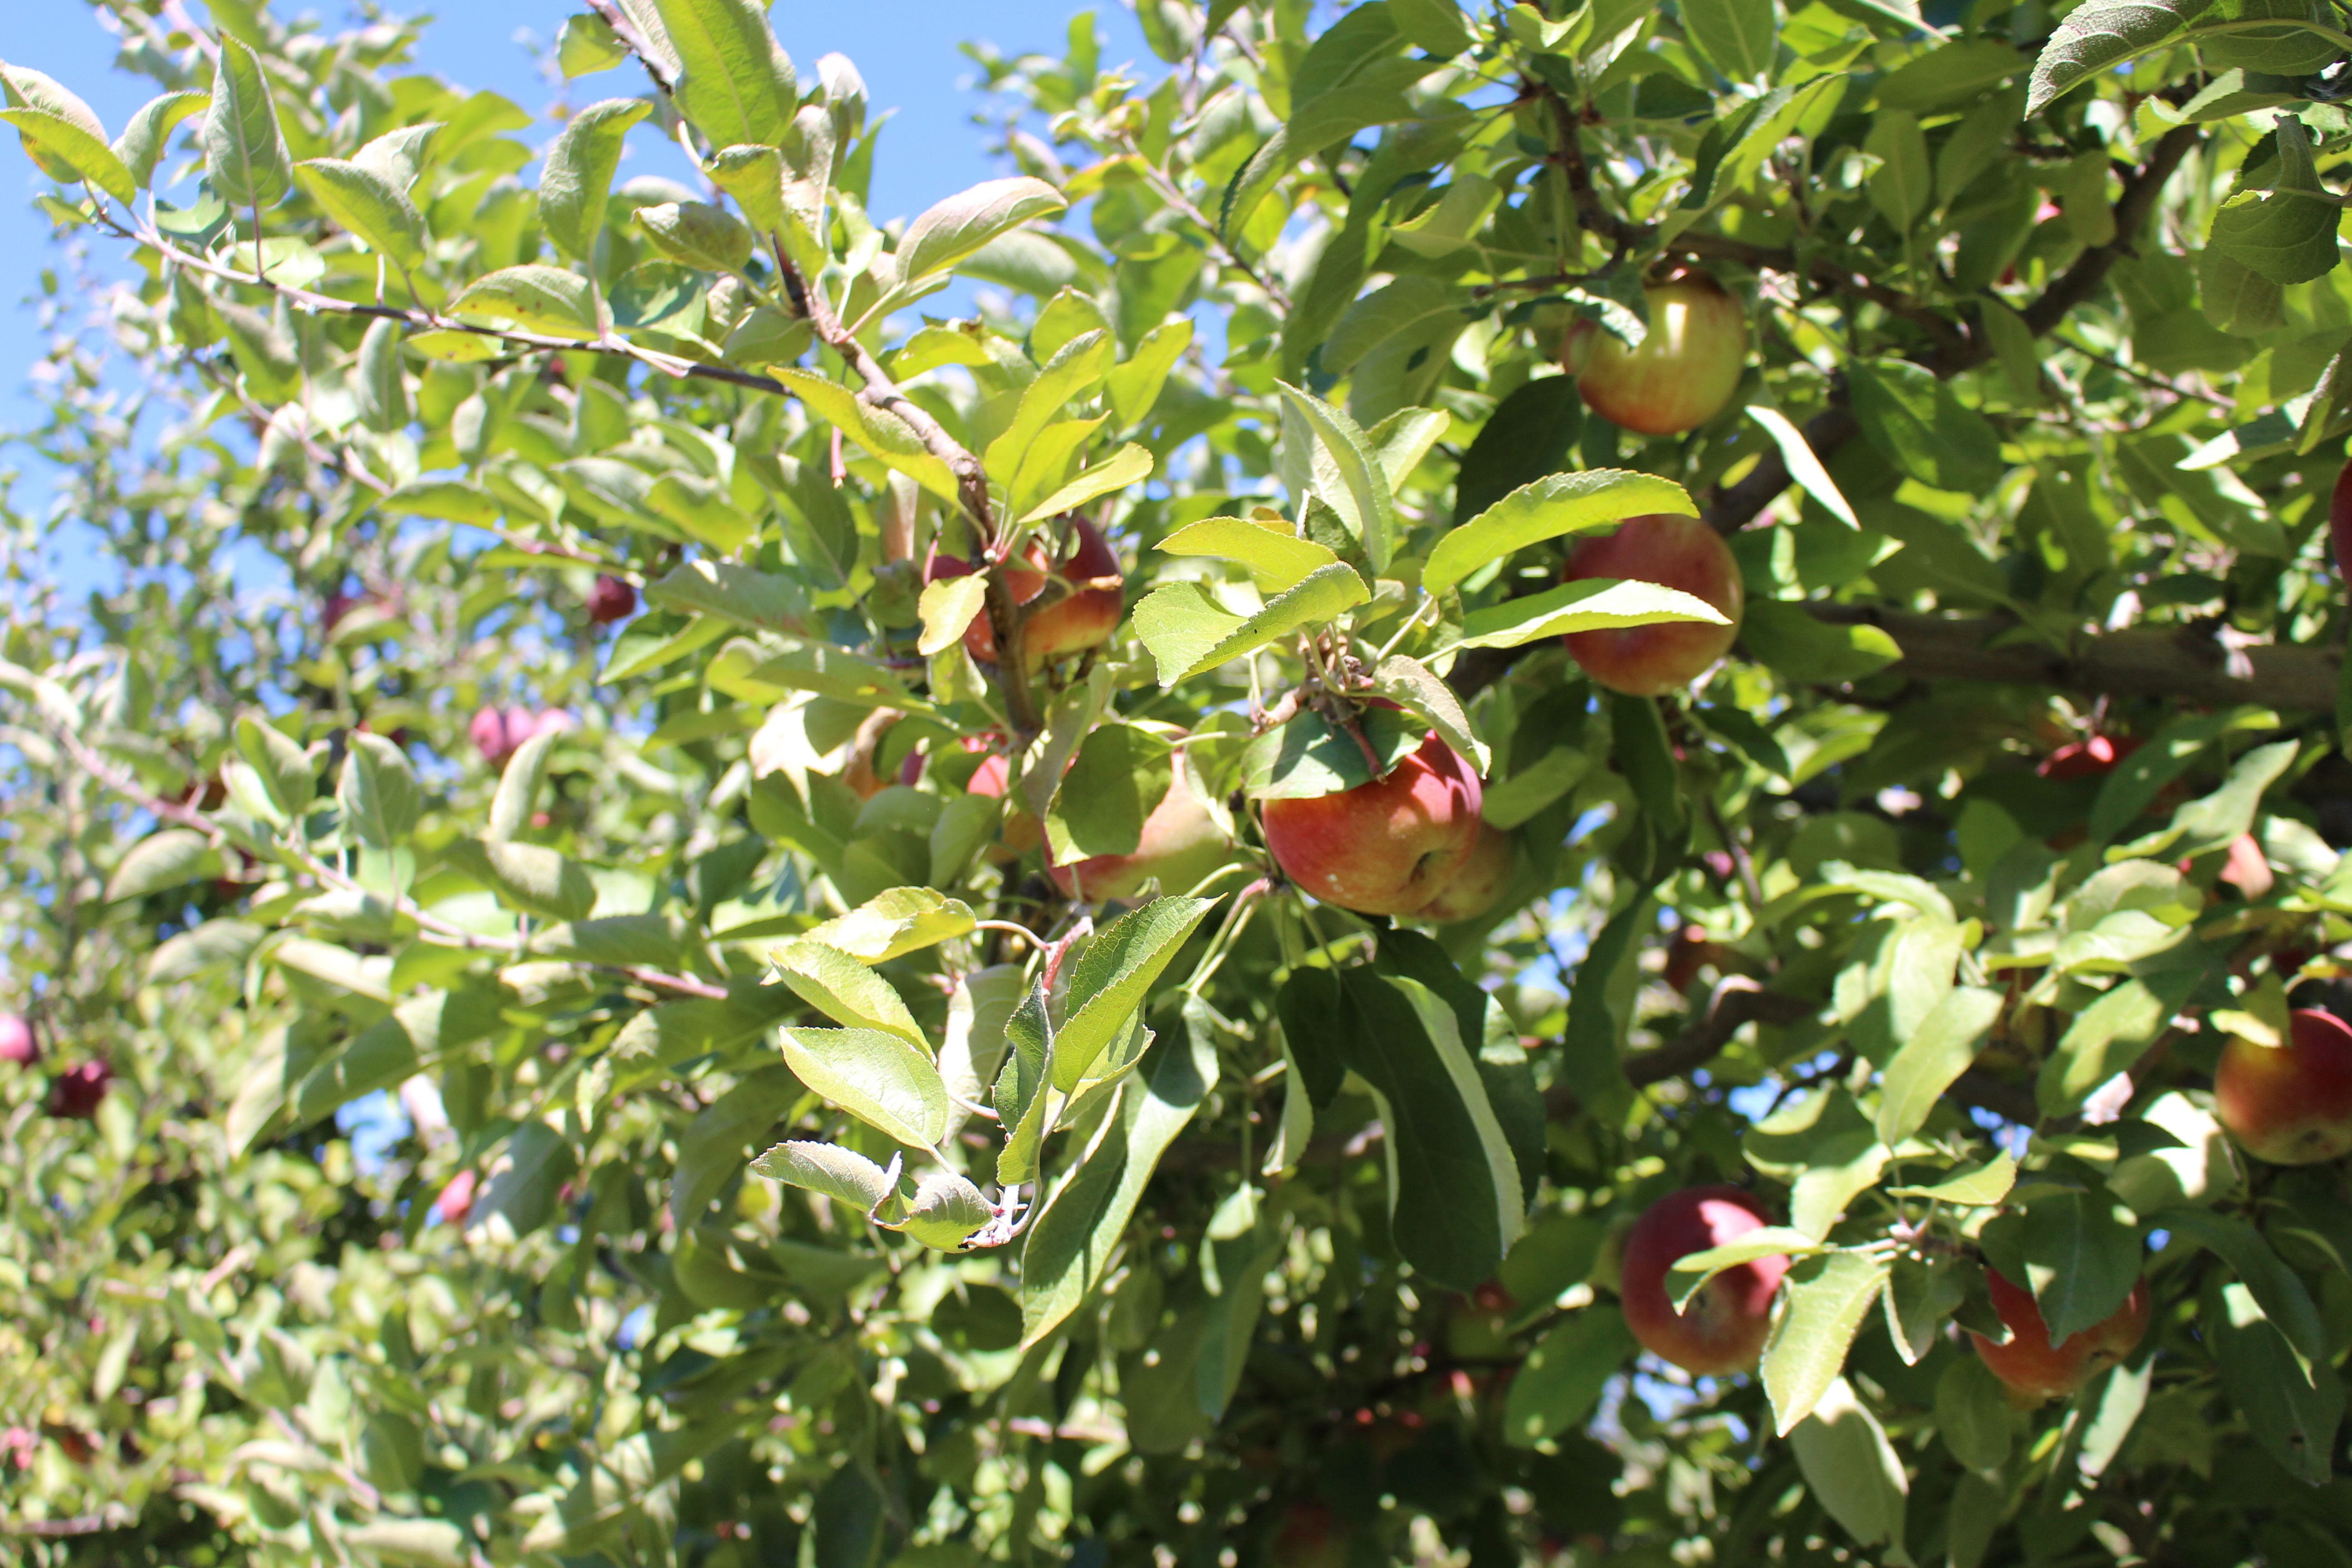 A Fruitful Trip to the Apple Orchard